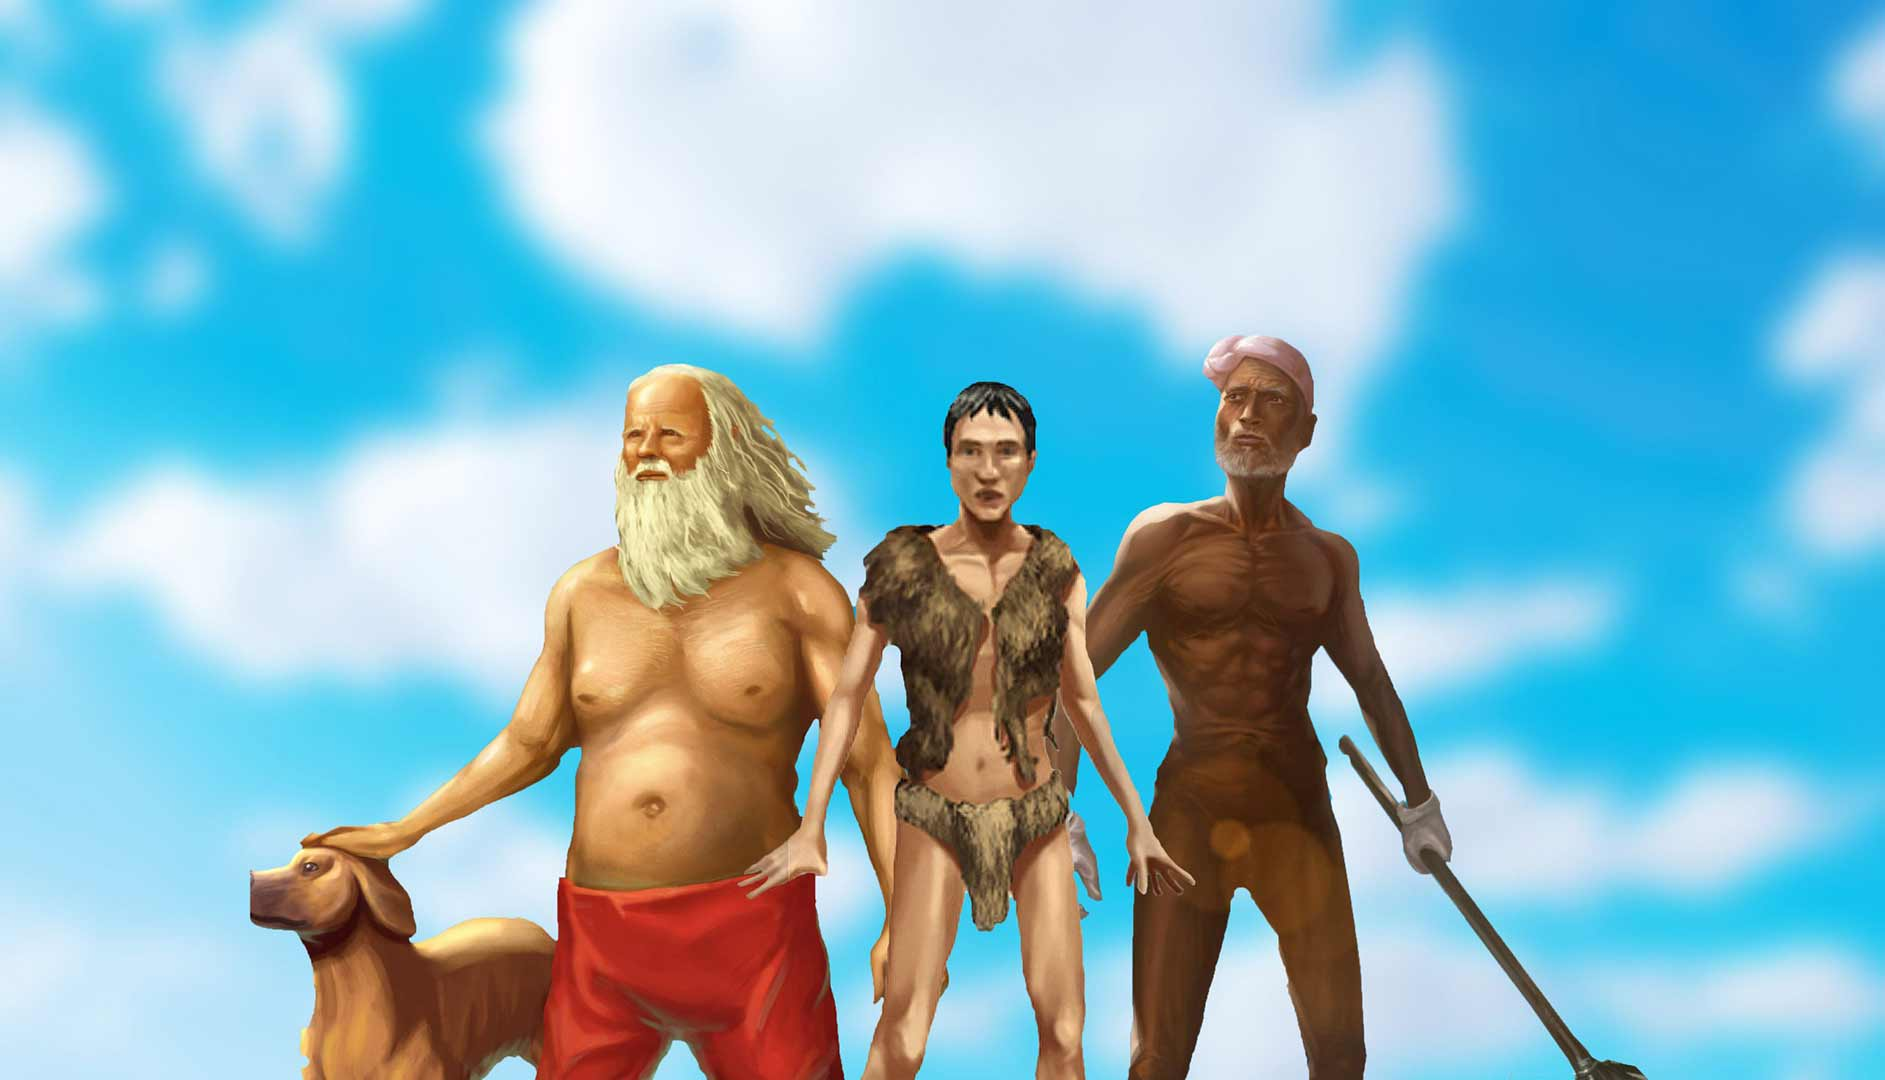 Three of our castaway heroes in blue sky background